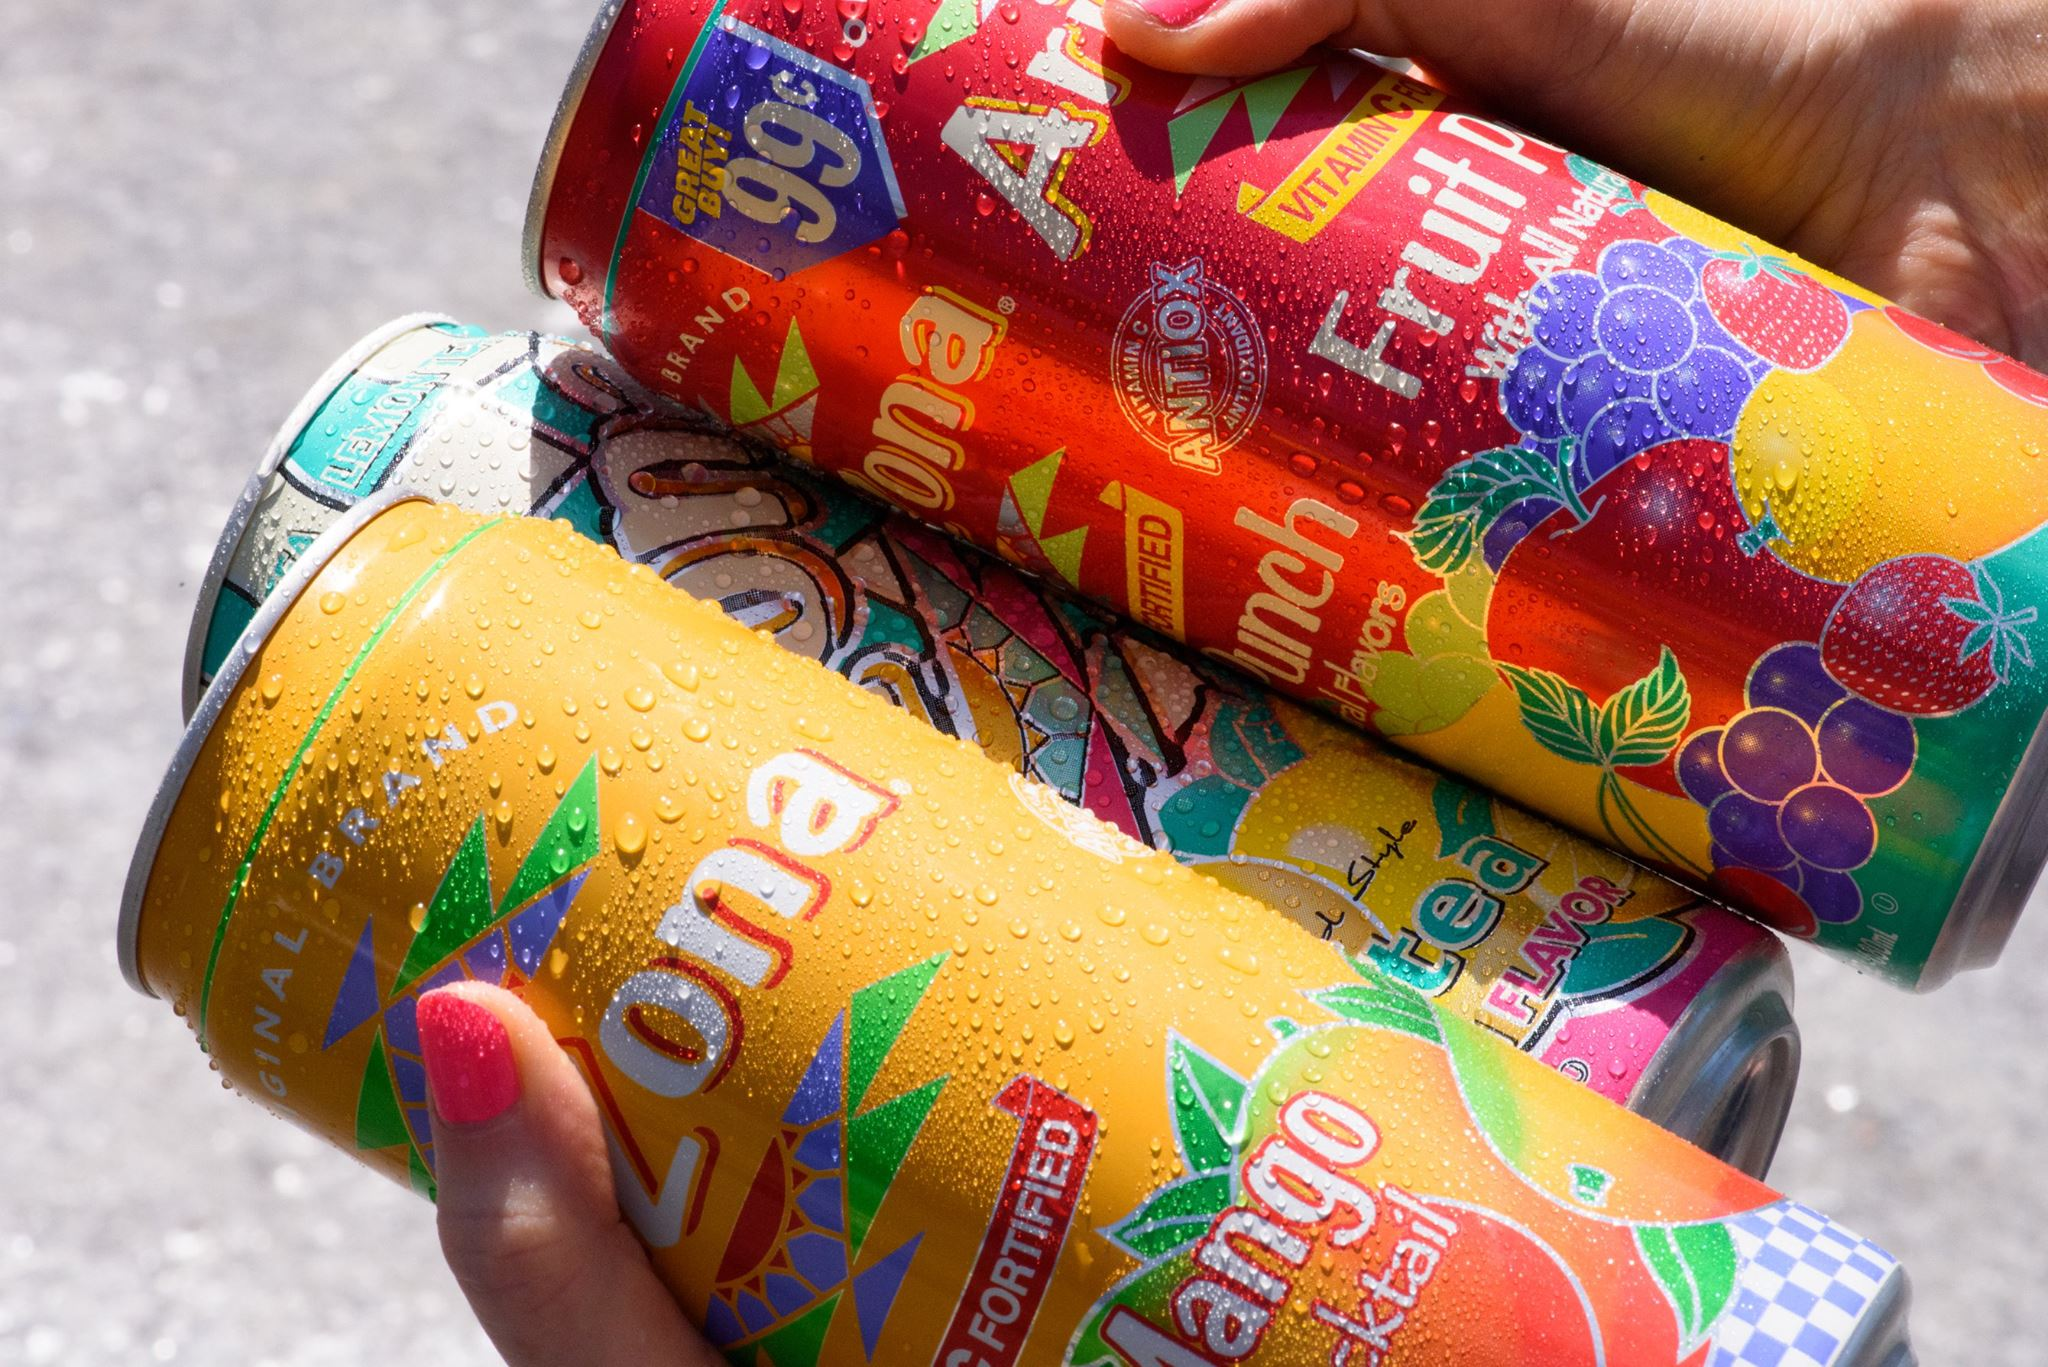 This Is Exactly Why Arizona Drinks Have Always Been 99 Cents